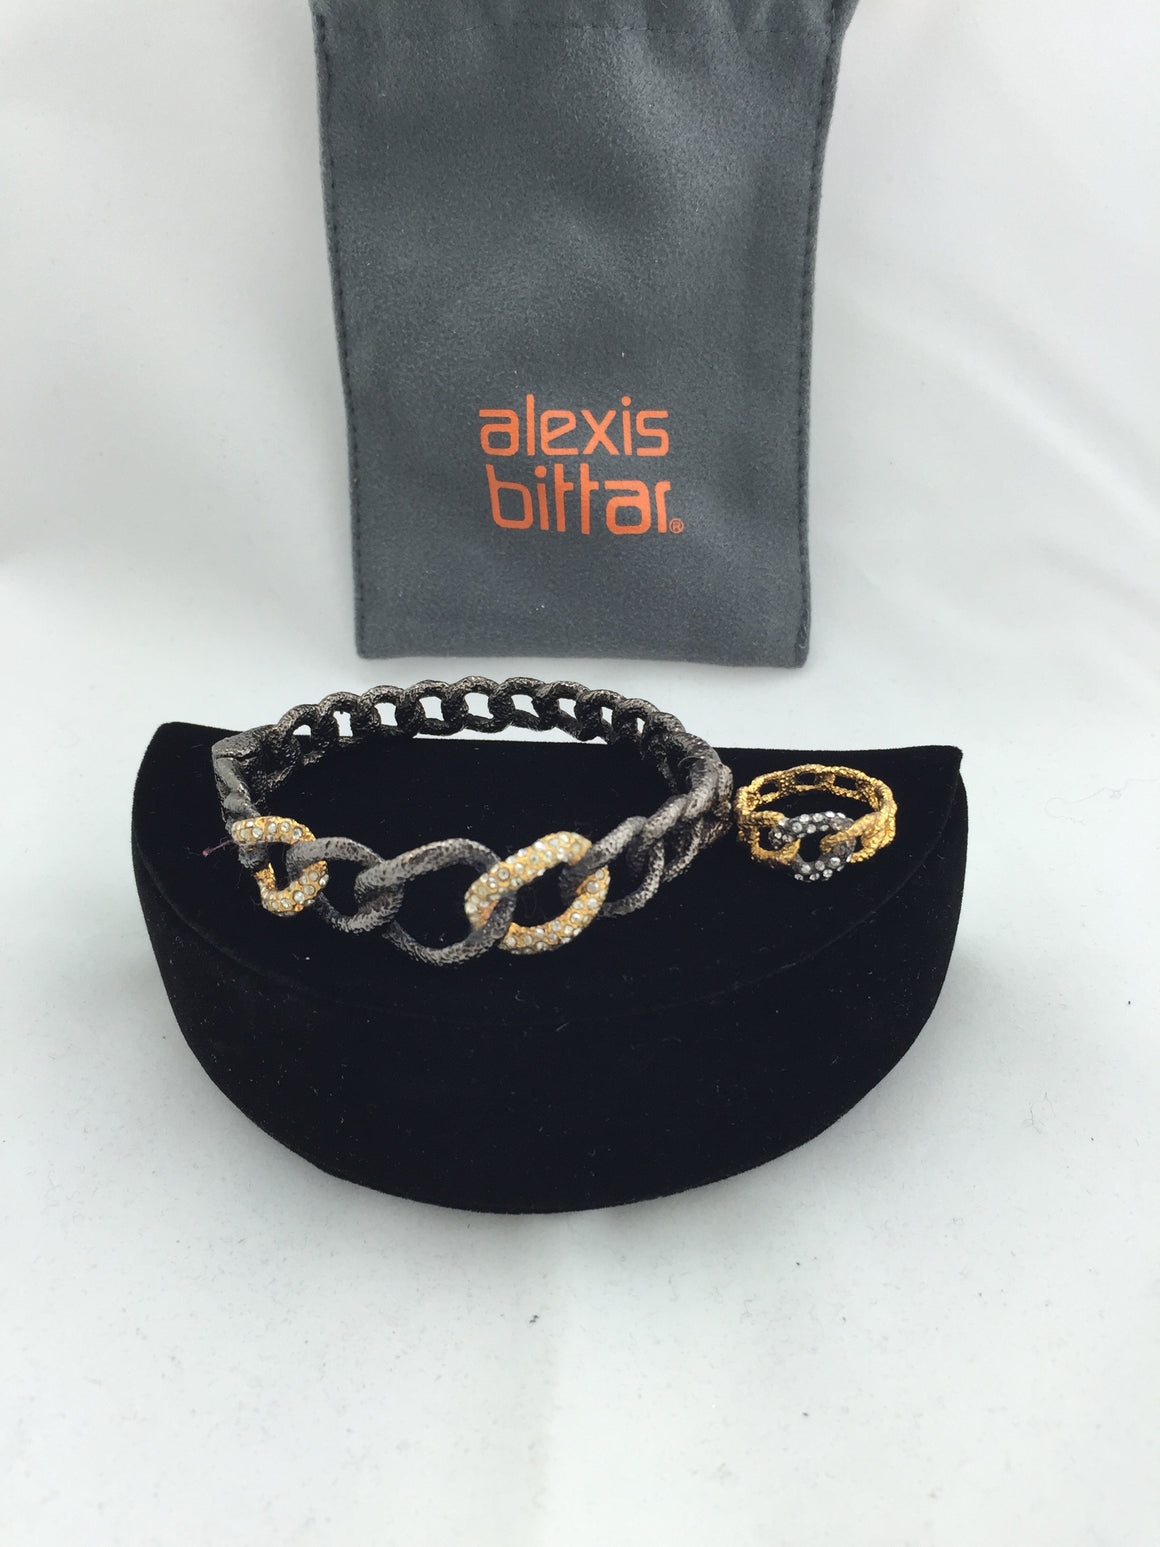 Alexis Bittar Bracelet and Ring Set! - New York Authentic Designer - Alexis Bittar